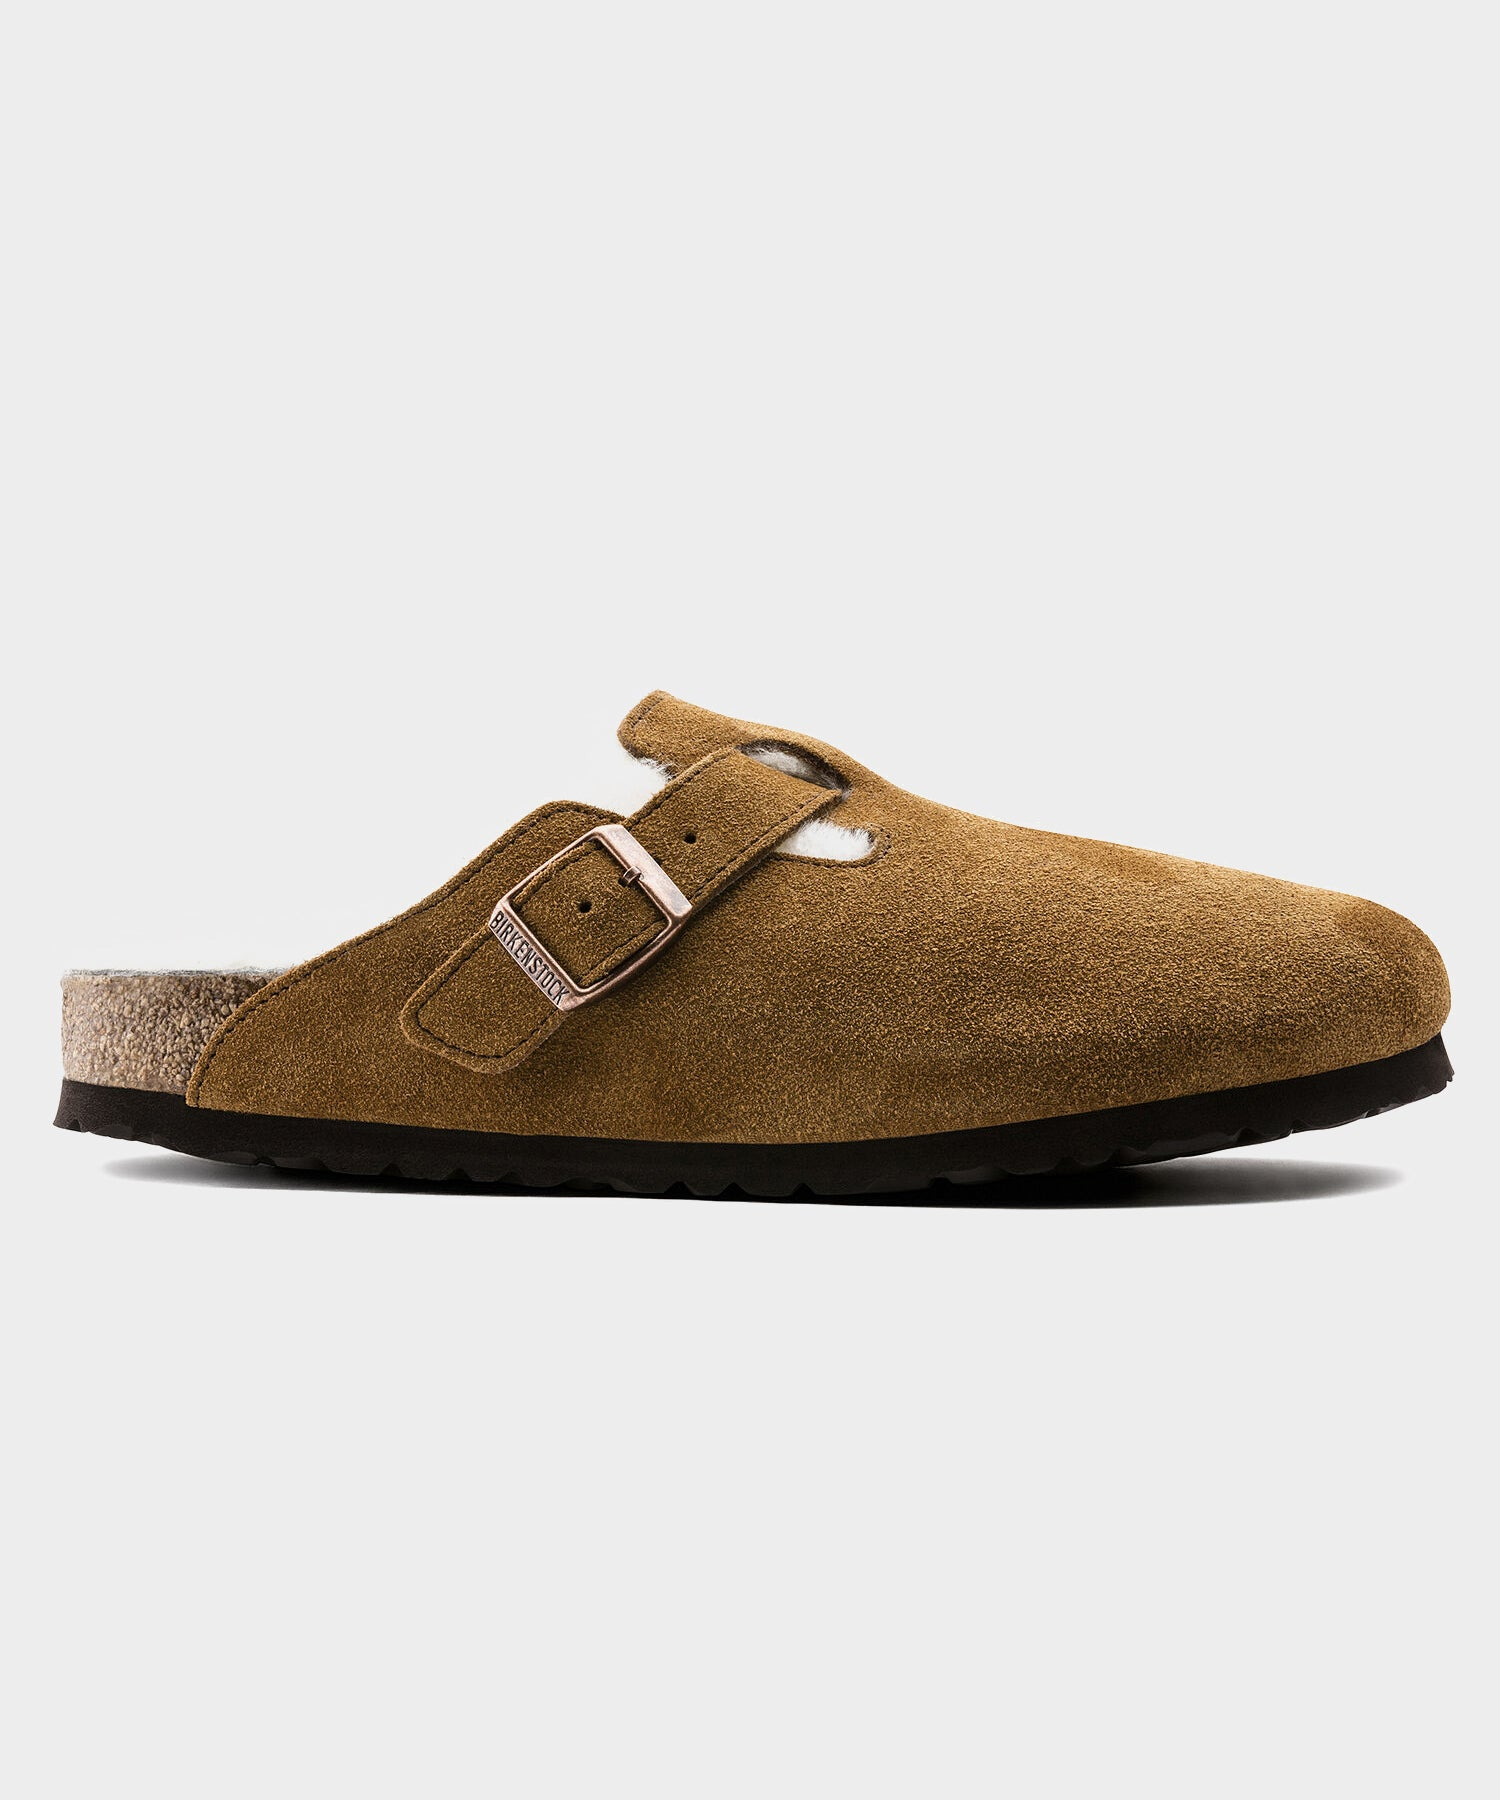 Birkenstock Boston in Mink Shearling